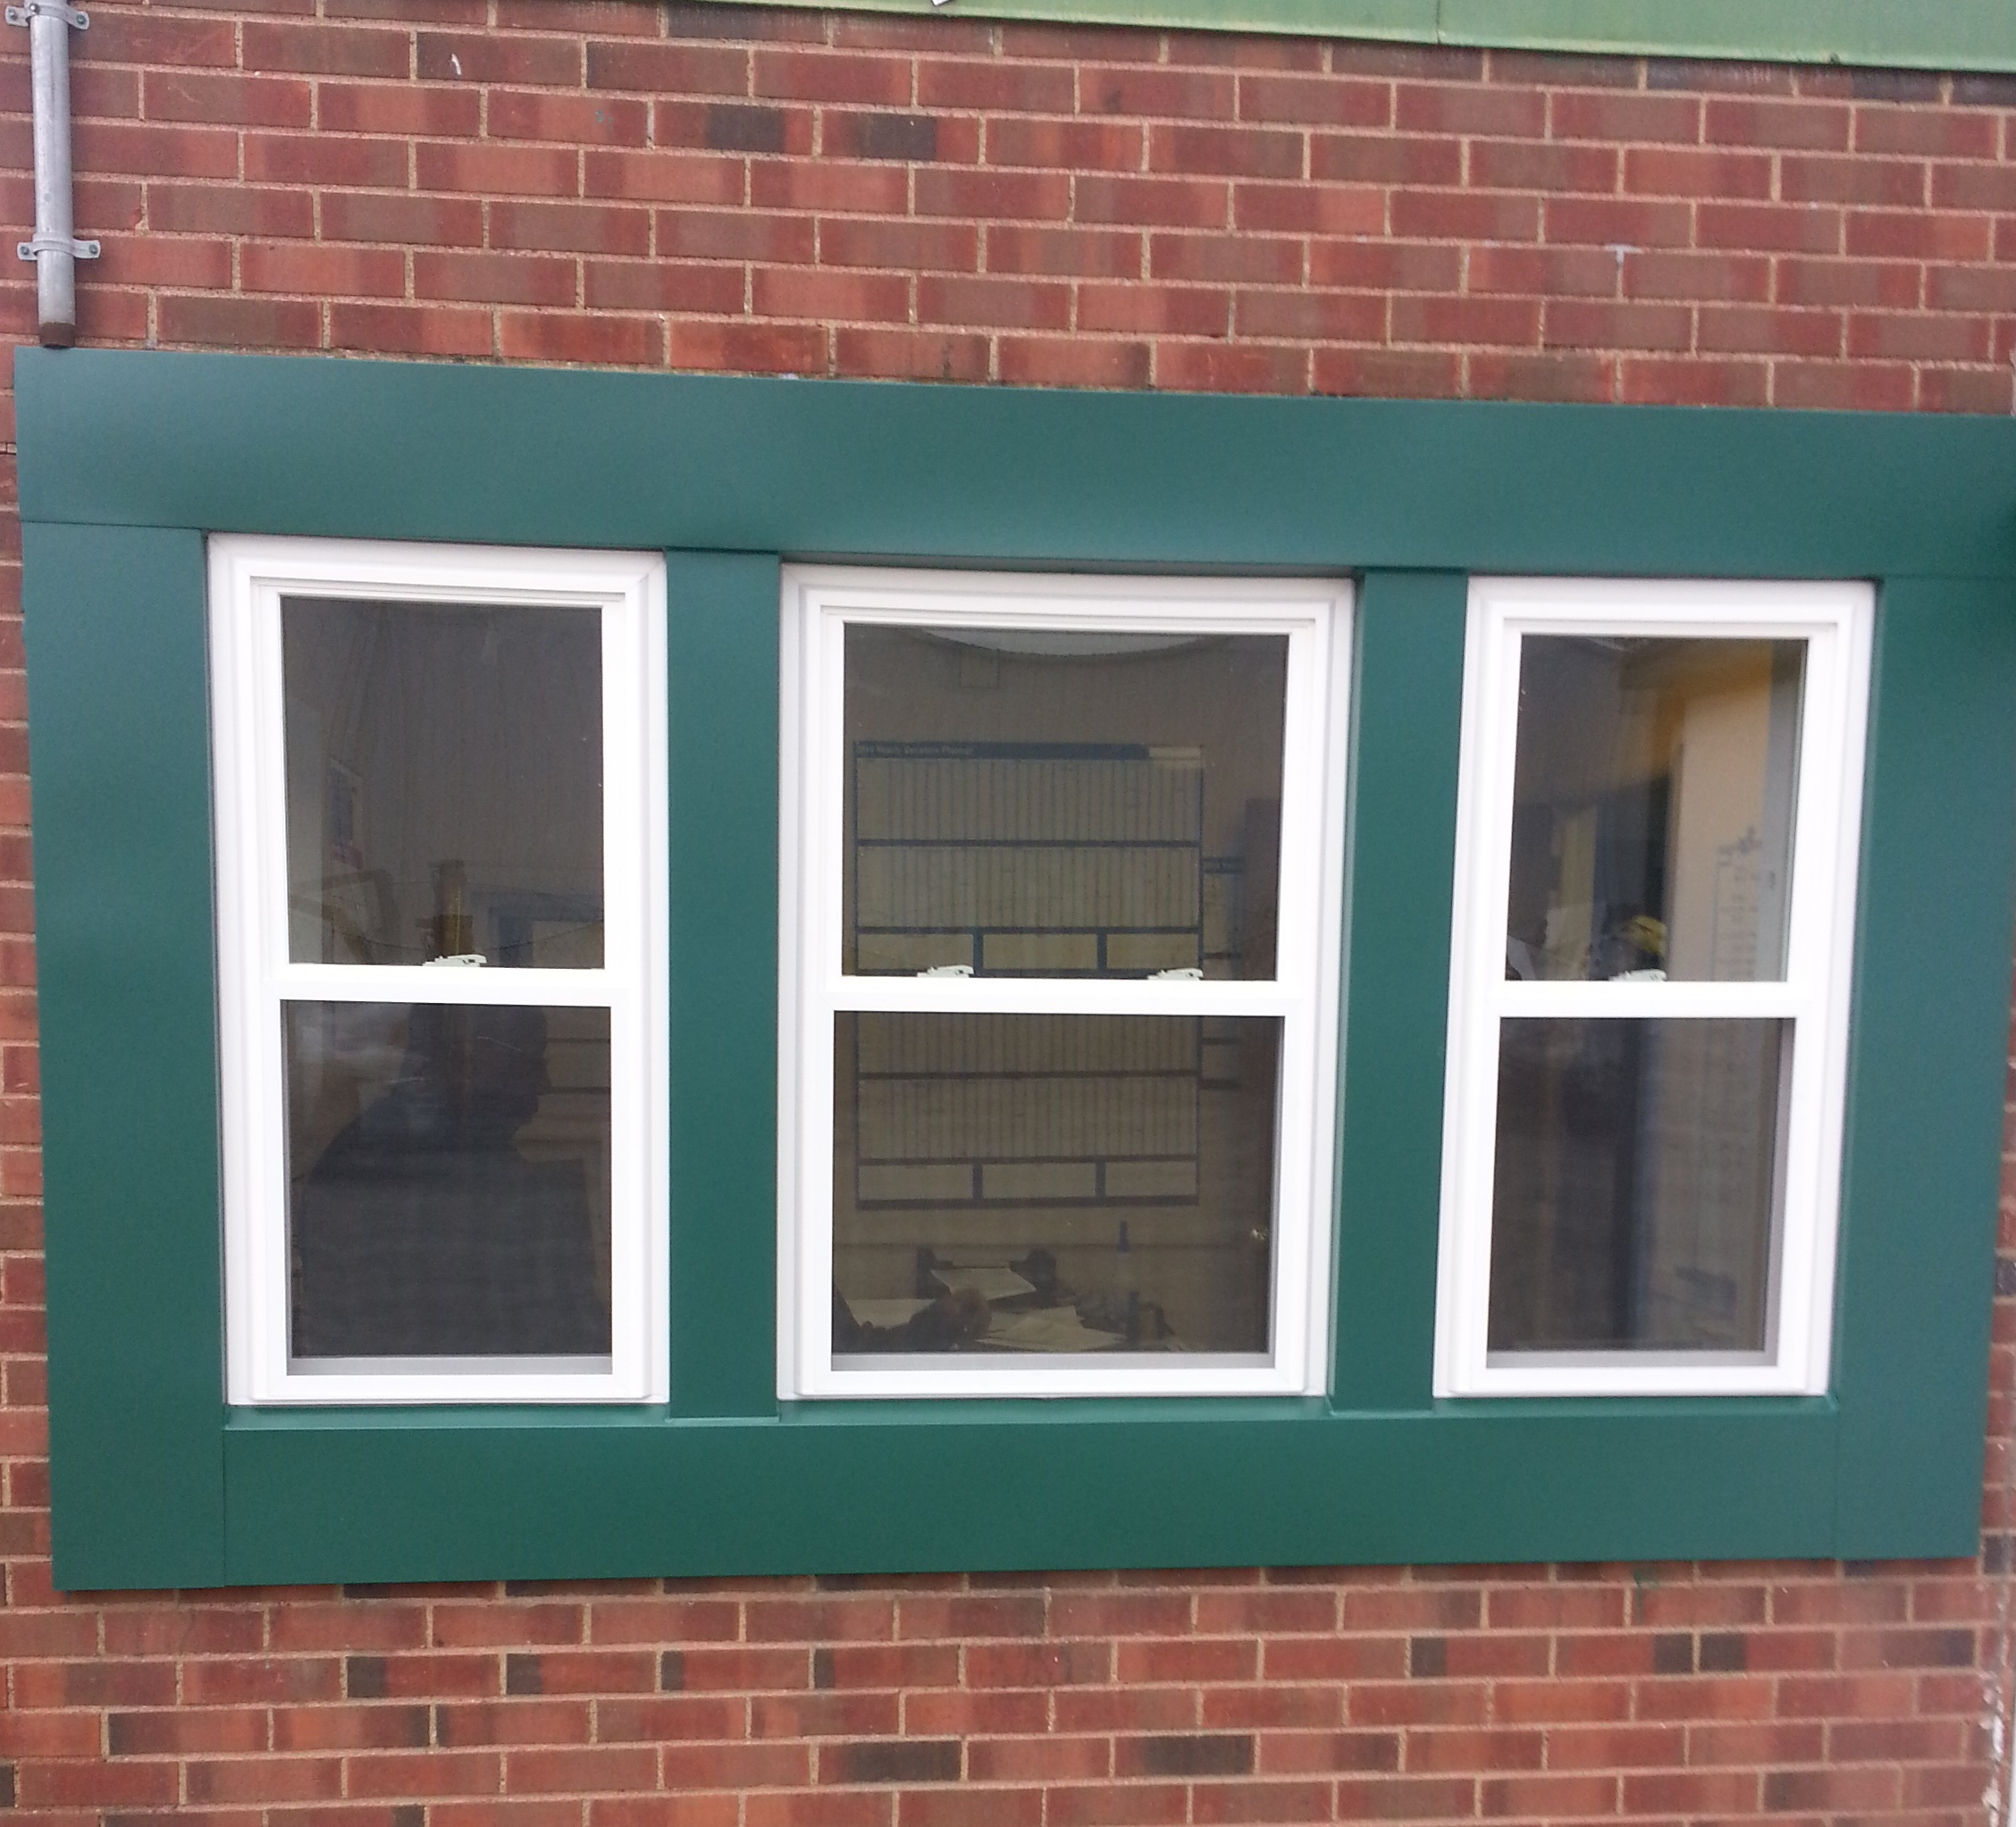 Commercial Windows 3 Double Hung With Custom Color